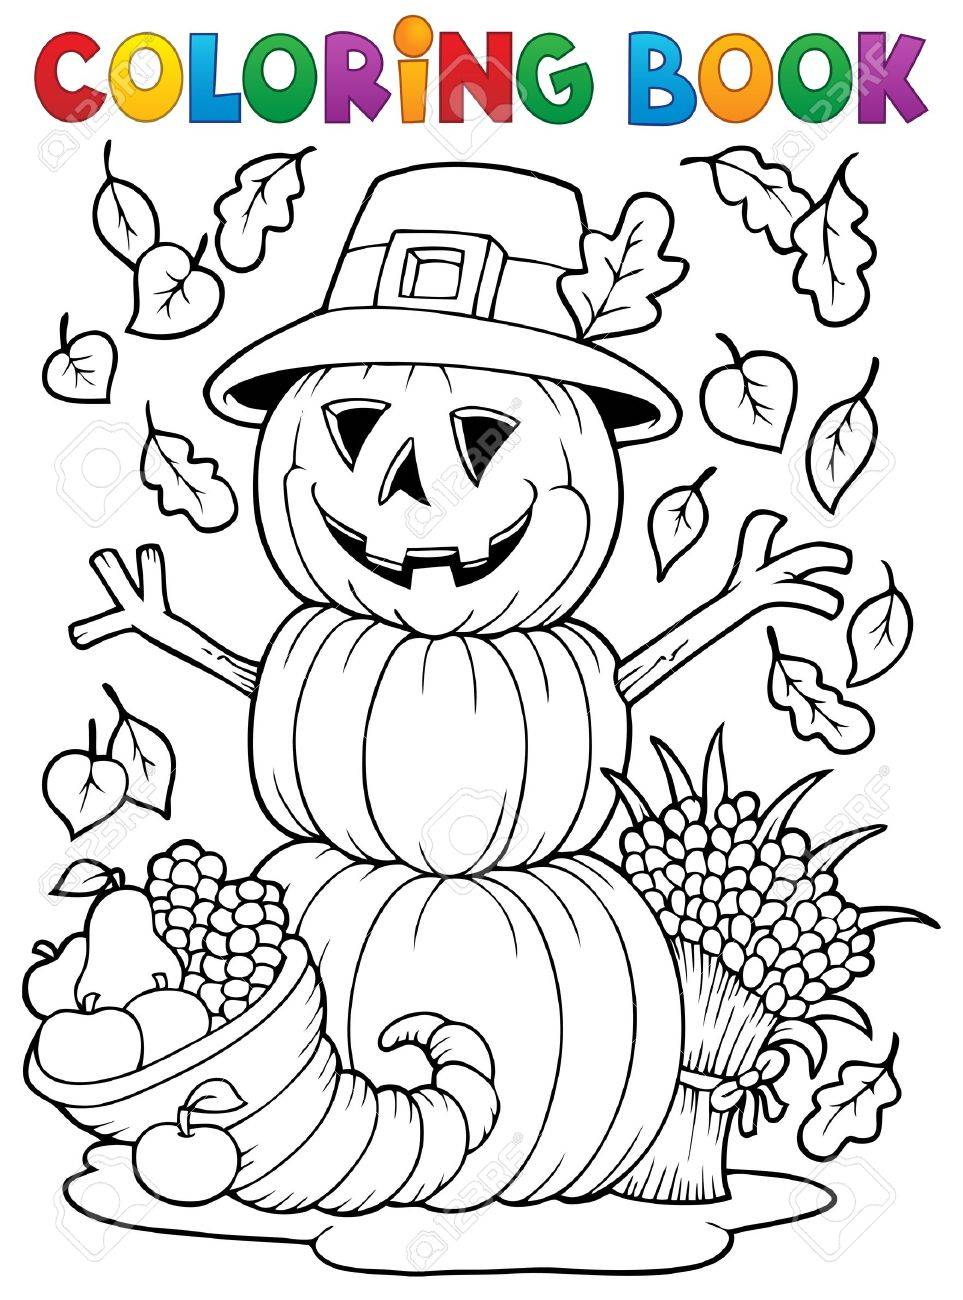 Coloring book Thanksgiving image Stock Vector - 22502236